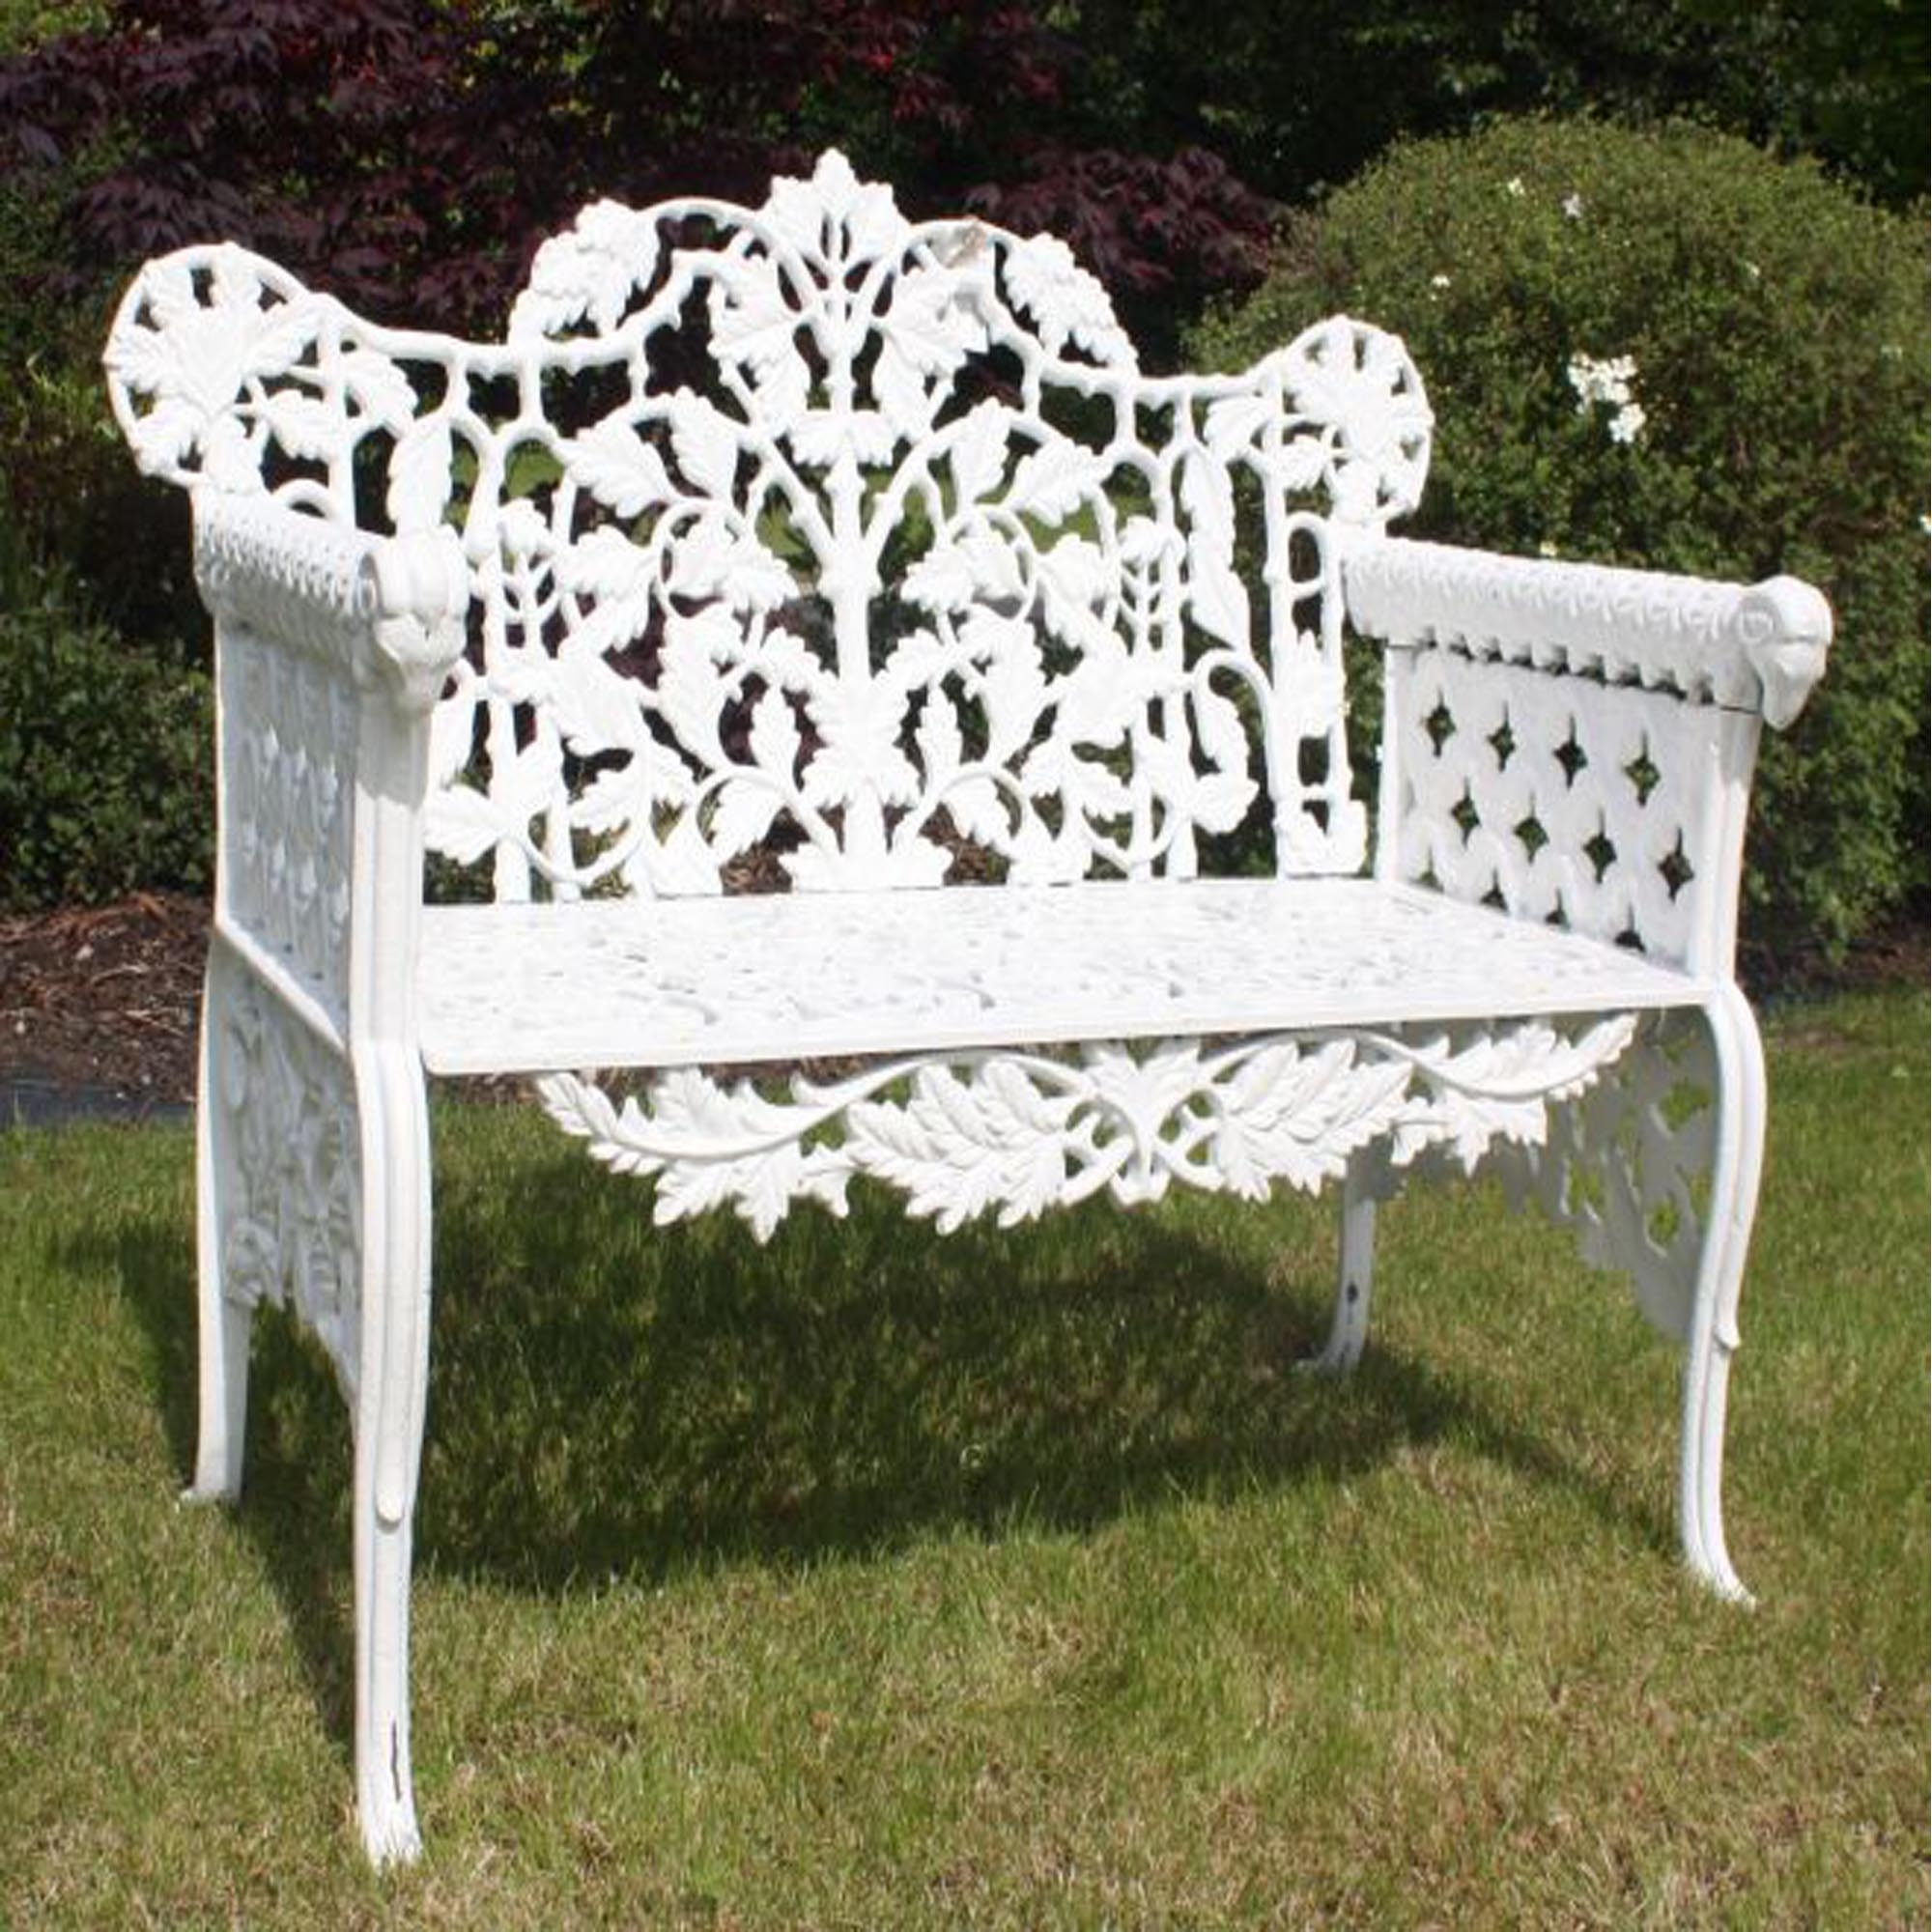 Superb Antique French Style Rams Head Garden Bench White Ncnpc Chair Design For Home Ncnpcorg